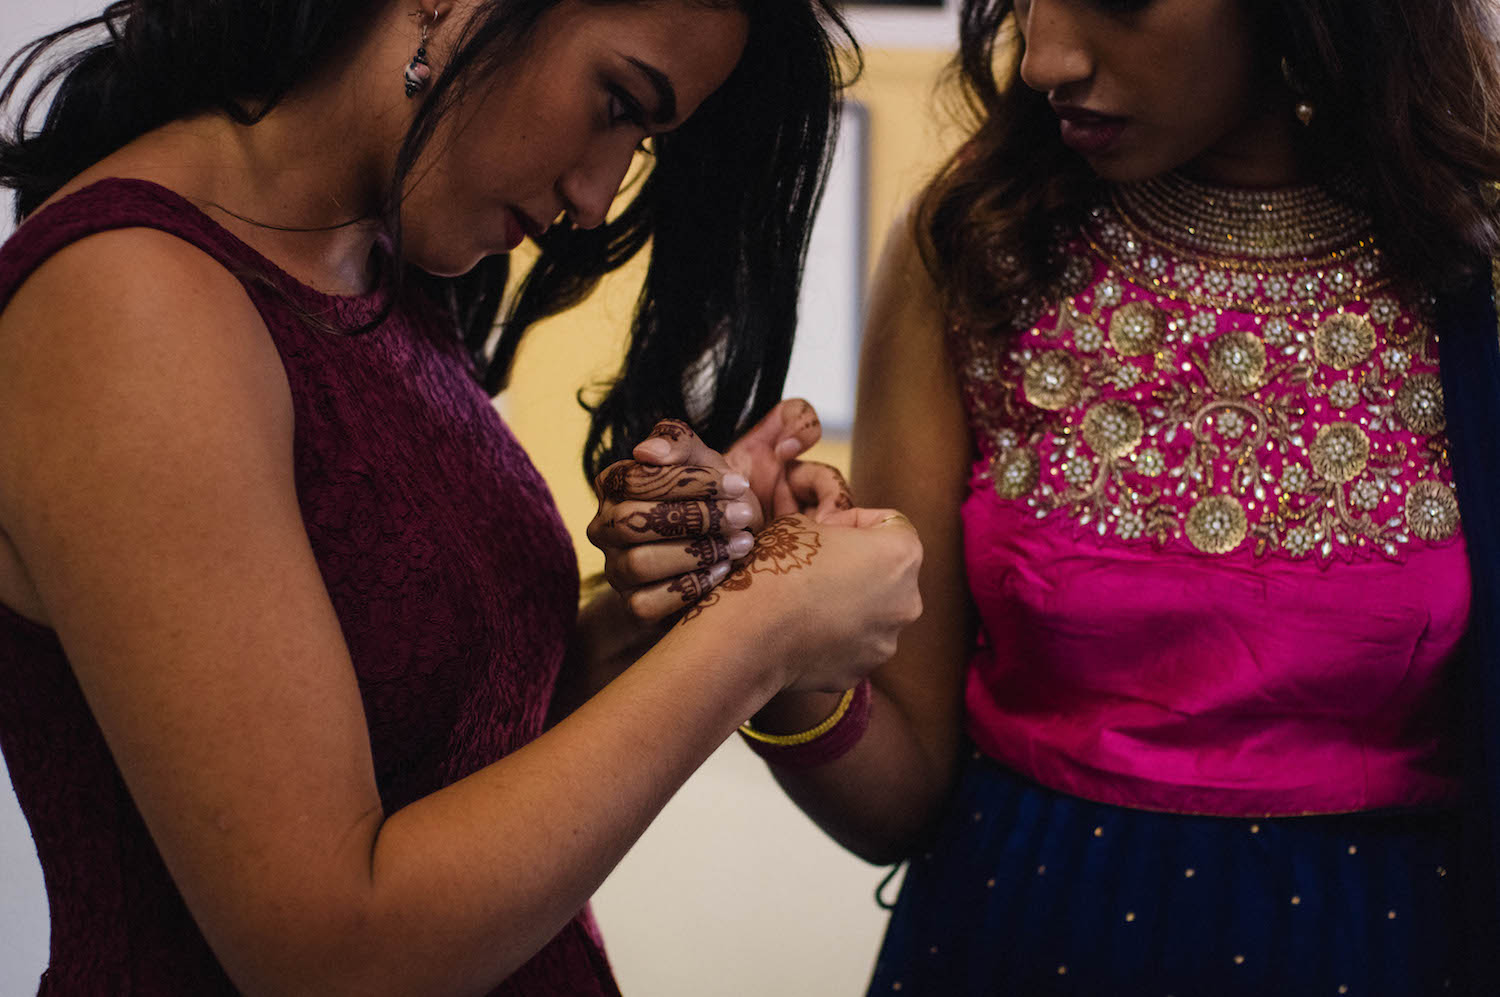 Bridesmaid helping the bride with her outfit change into her Indian dress taken by Rhianna May Destination Wedding Photographer.